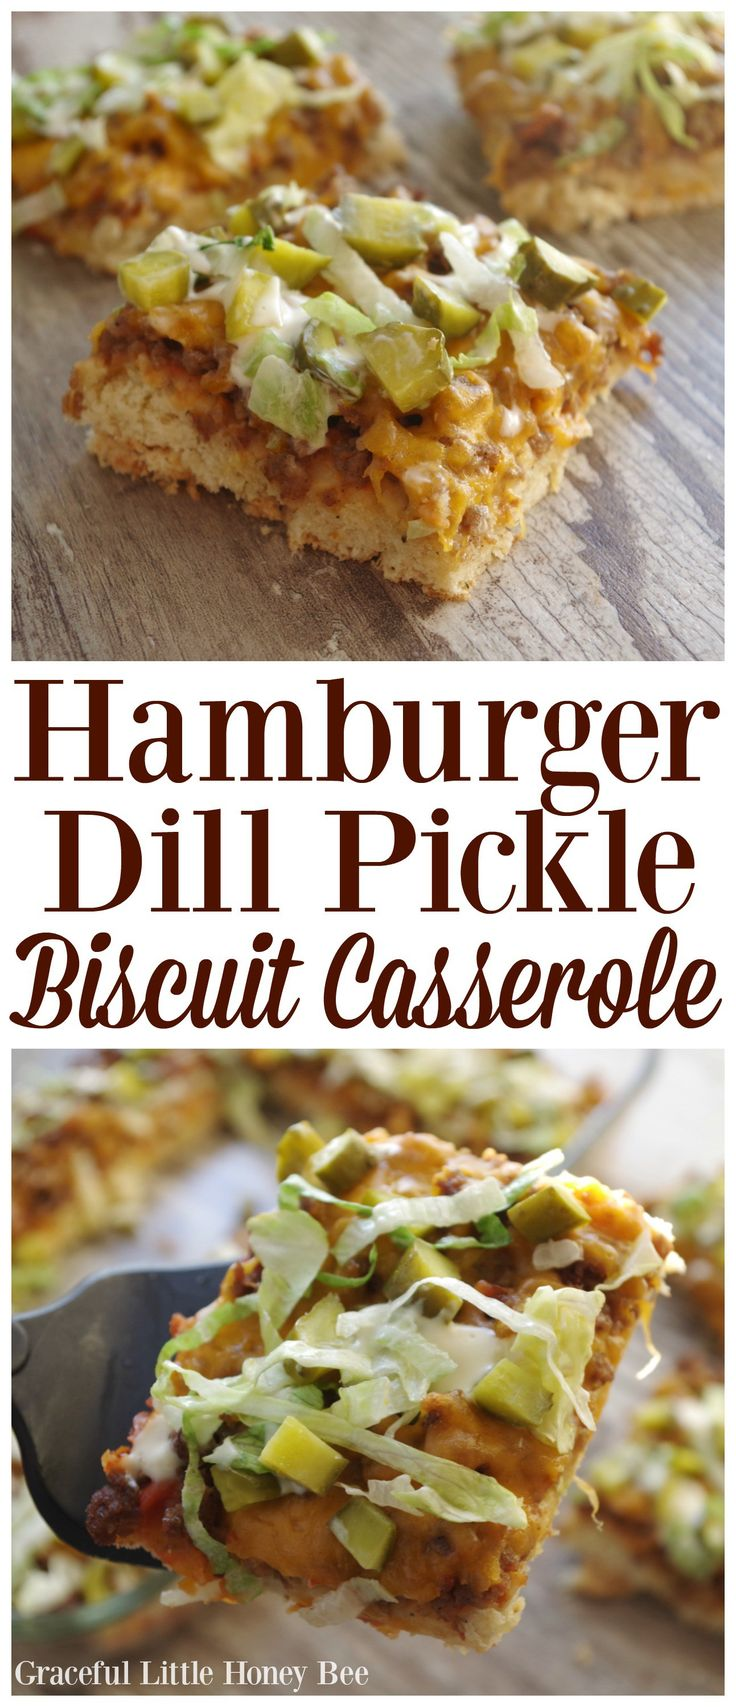 Try this easy Hamburger Dill Pickle Biscuit Casserole for a quick week night meal on gracefullittlehoneybee.com